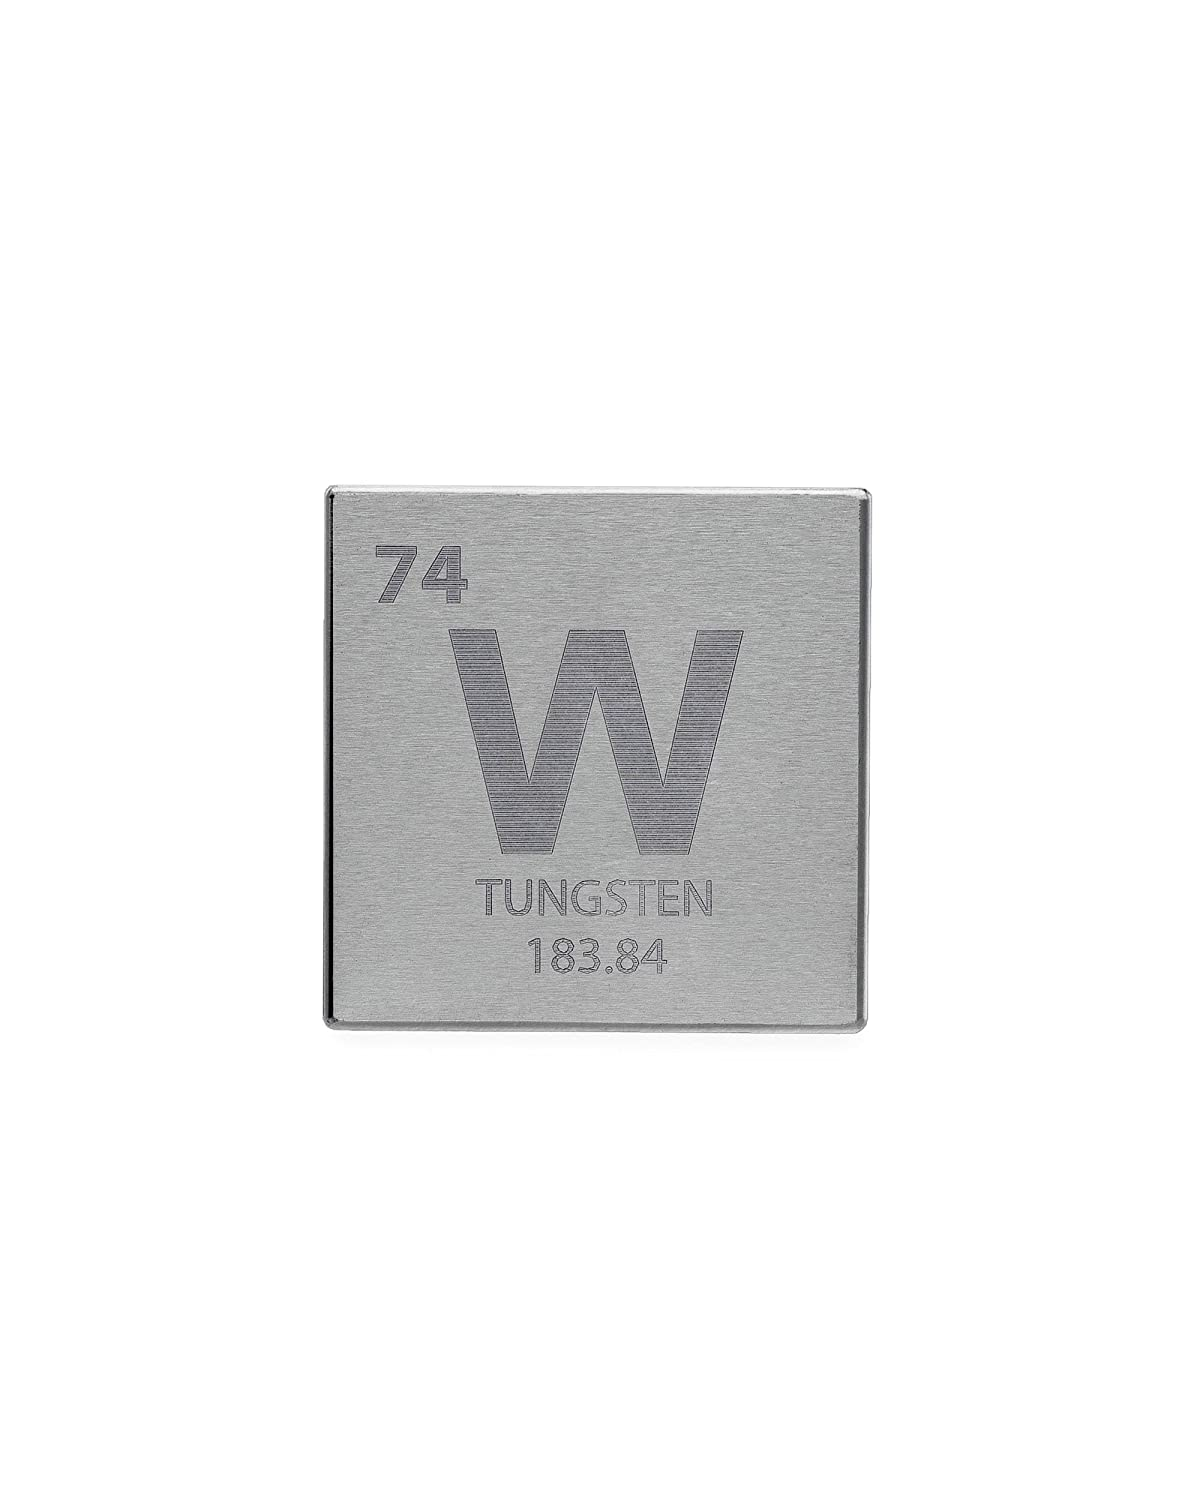 Tungsten 15 one kilo cube engraved periodic table symbol tungsten 15 one kilo cube engraved periodic table symbol amazon industrial scientific urtaz Choice Image